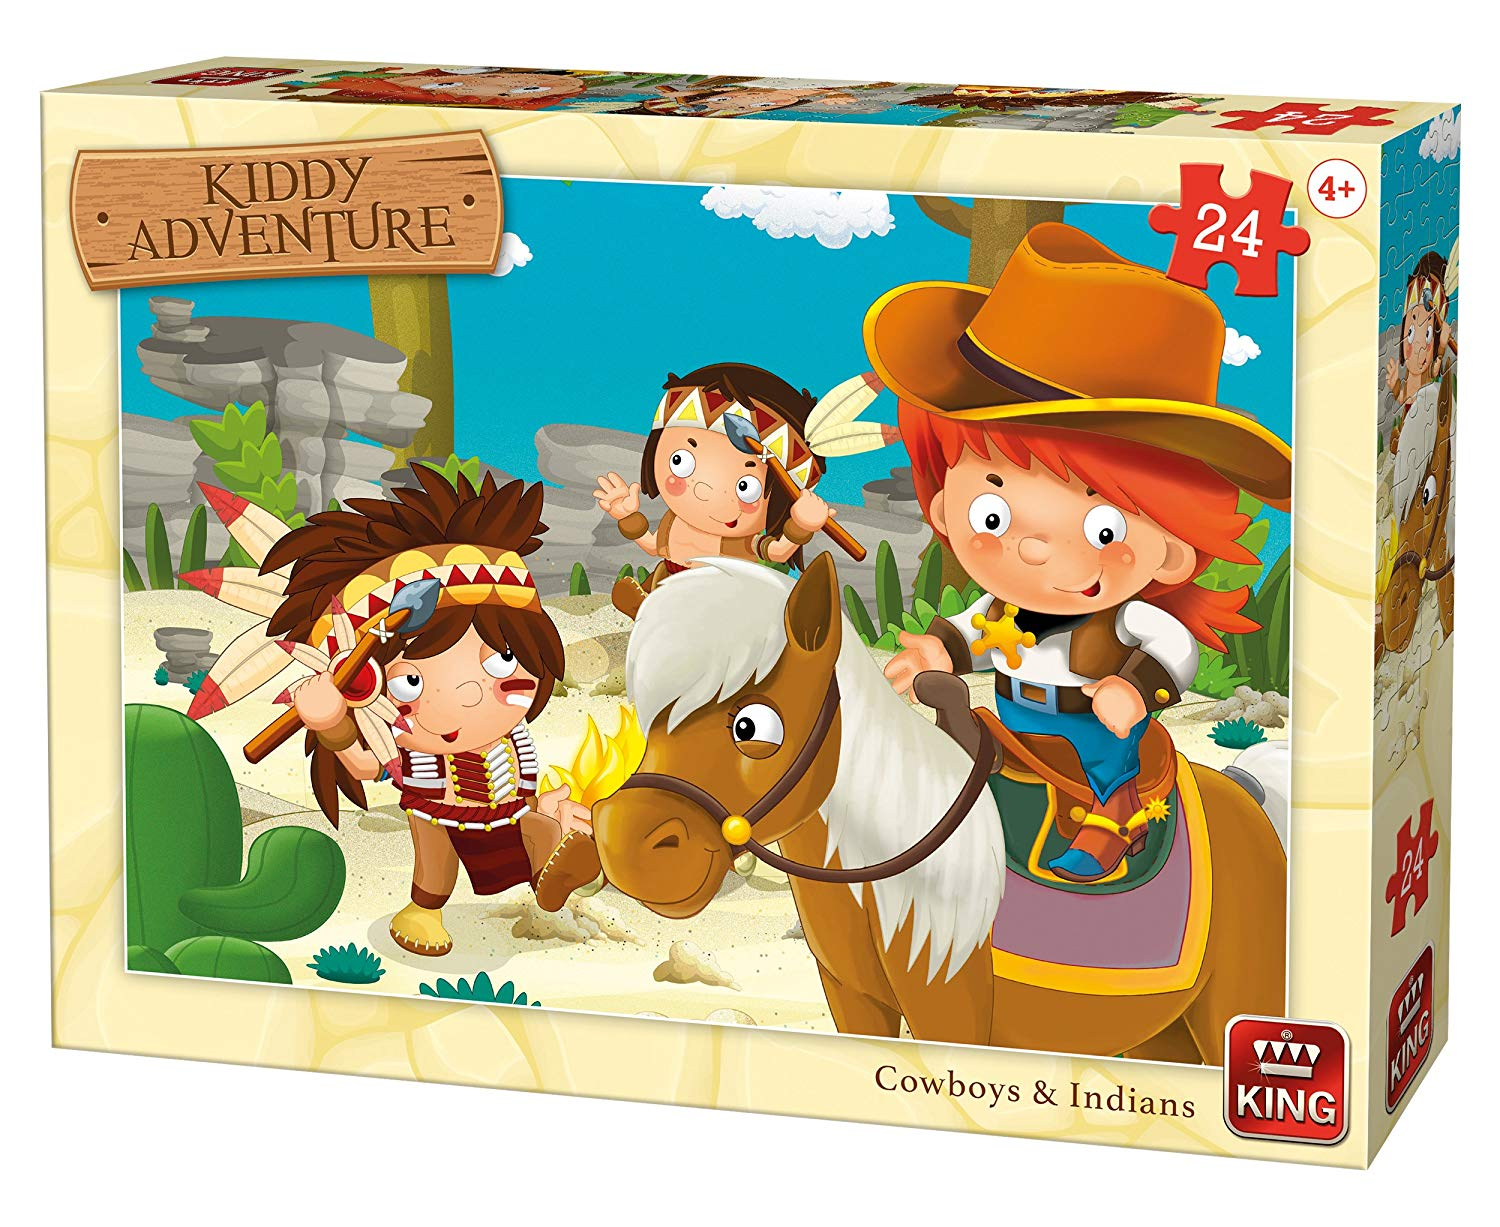 king-international-cow-boys-indians-24-teile-puzzle-king-puzzle-05789